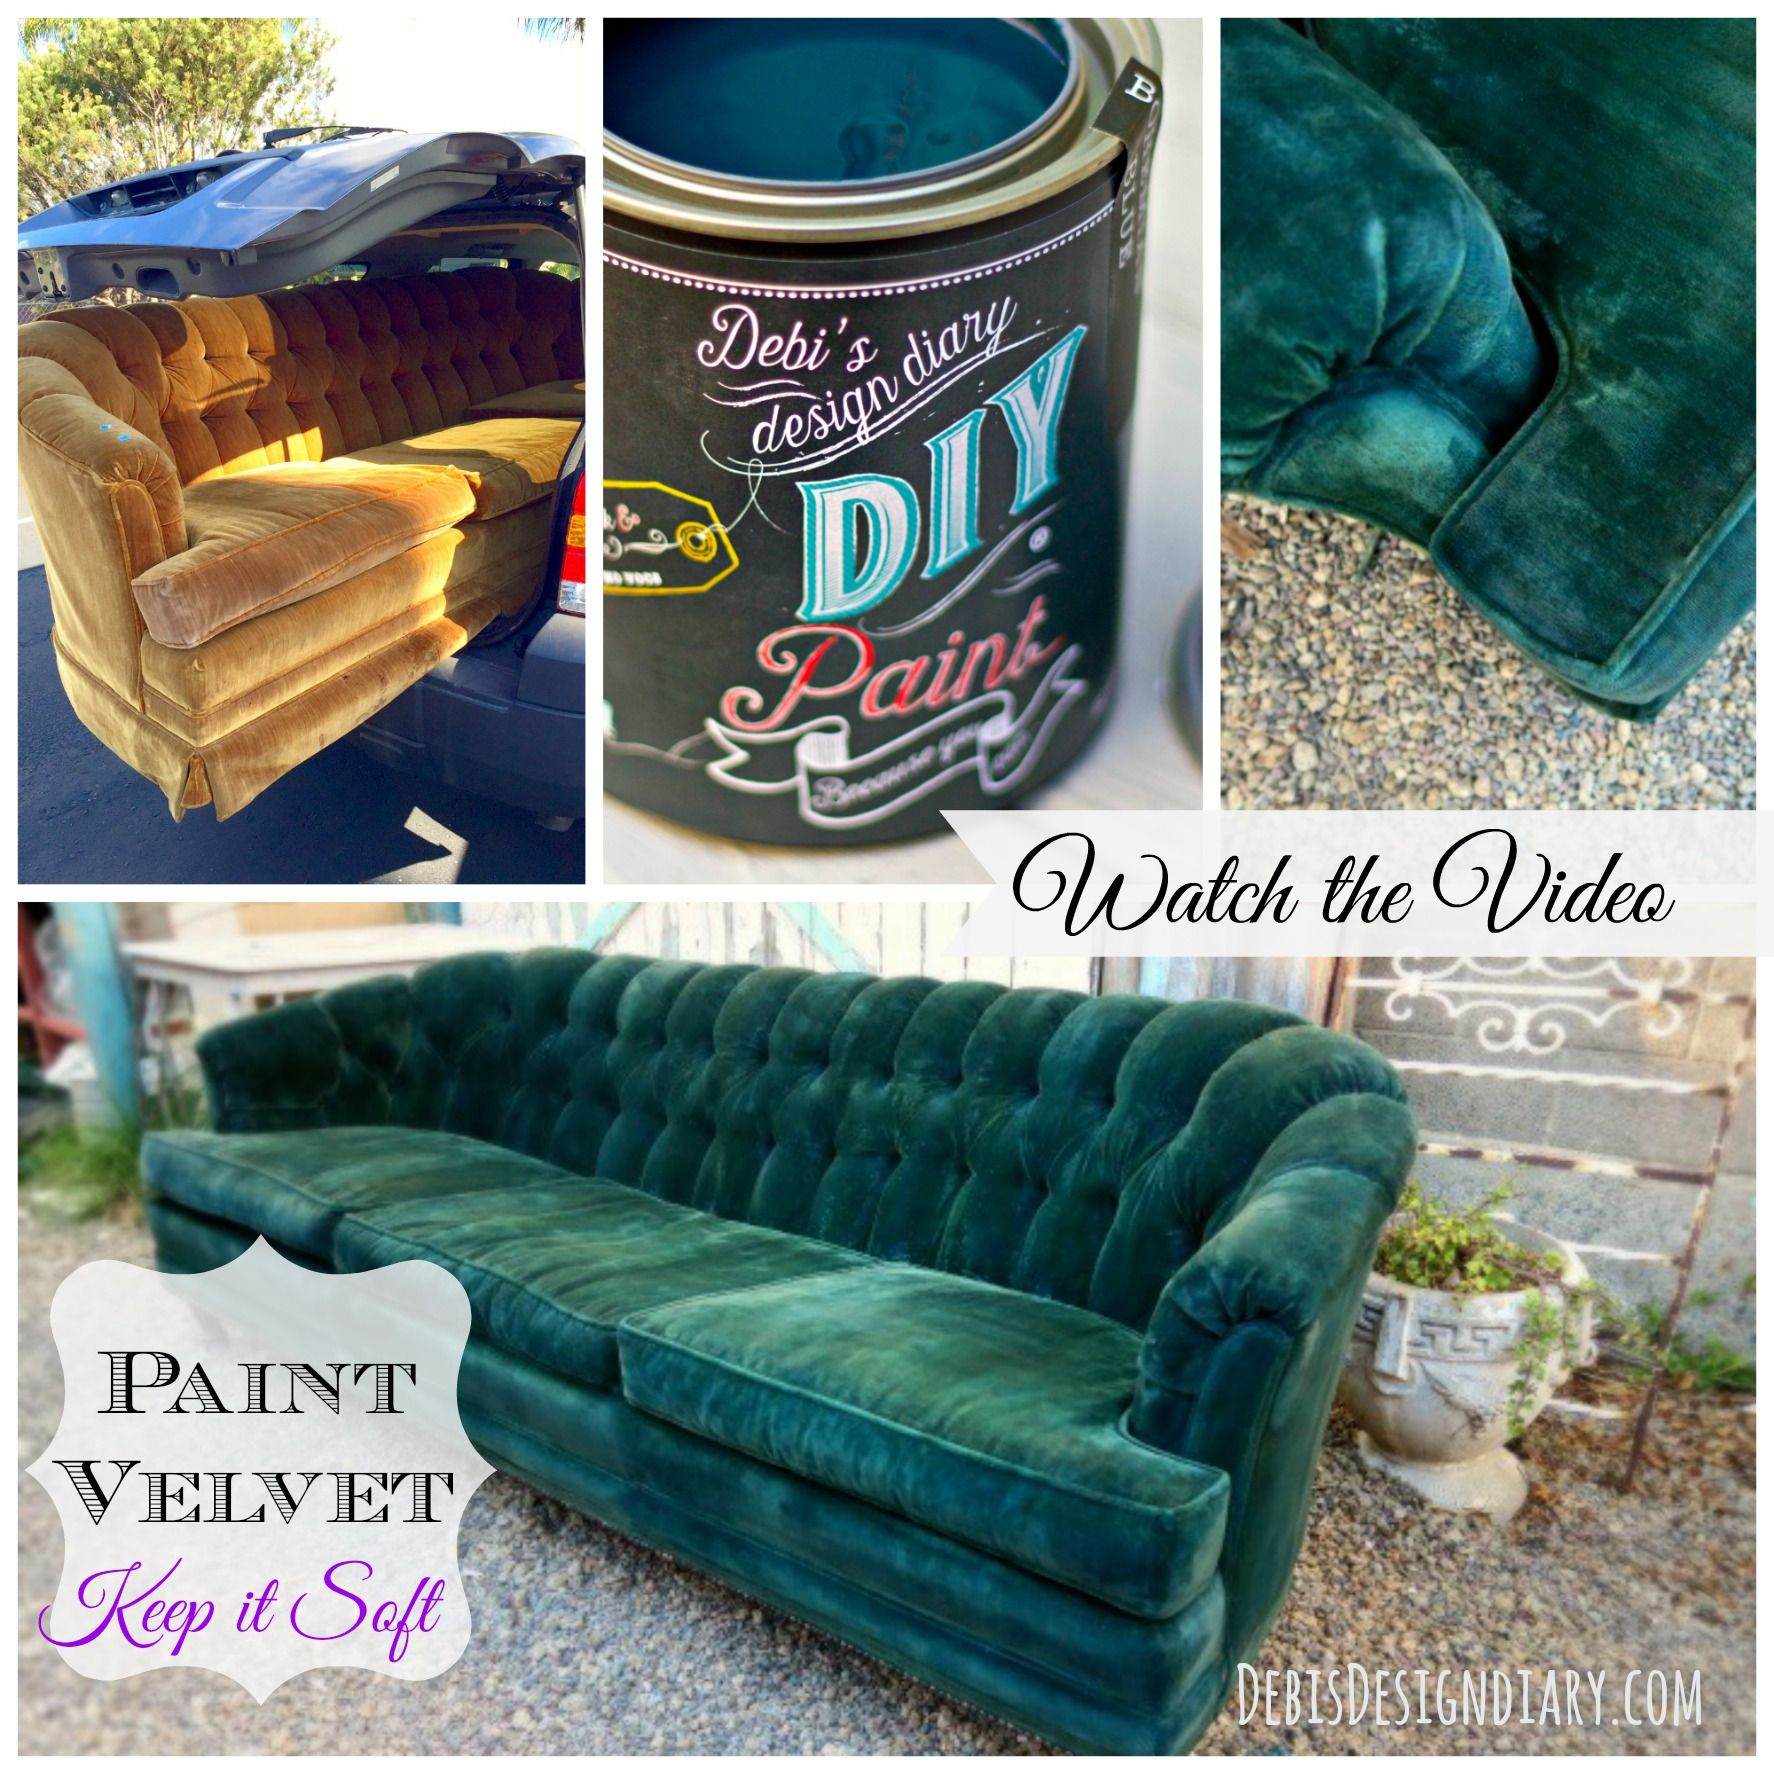 How To Paint A Couch Or Upholstery Painting Fabric Furniture Paint Upholstery Painted Sofa